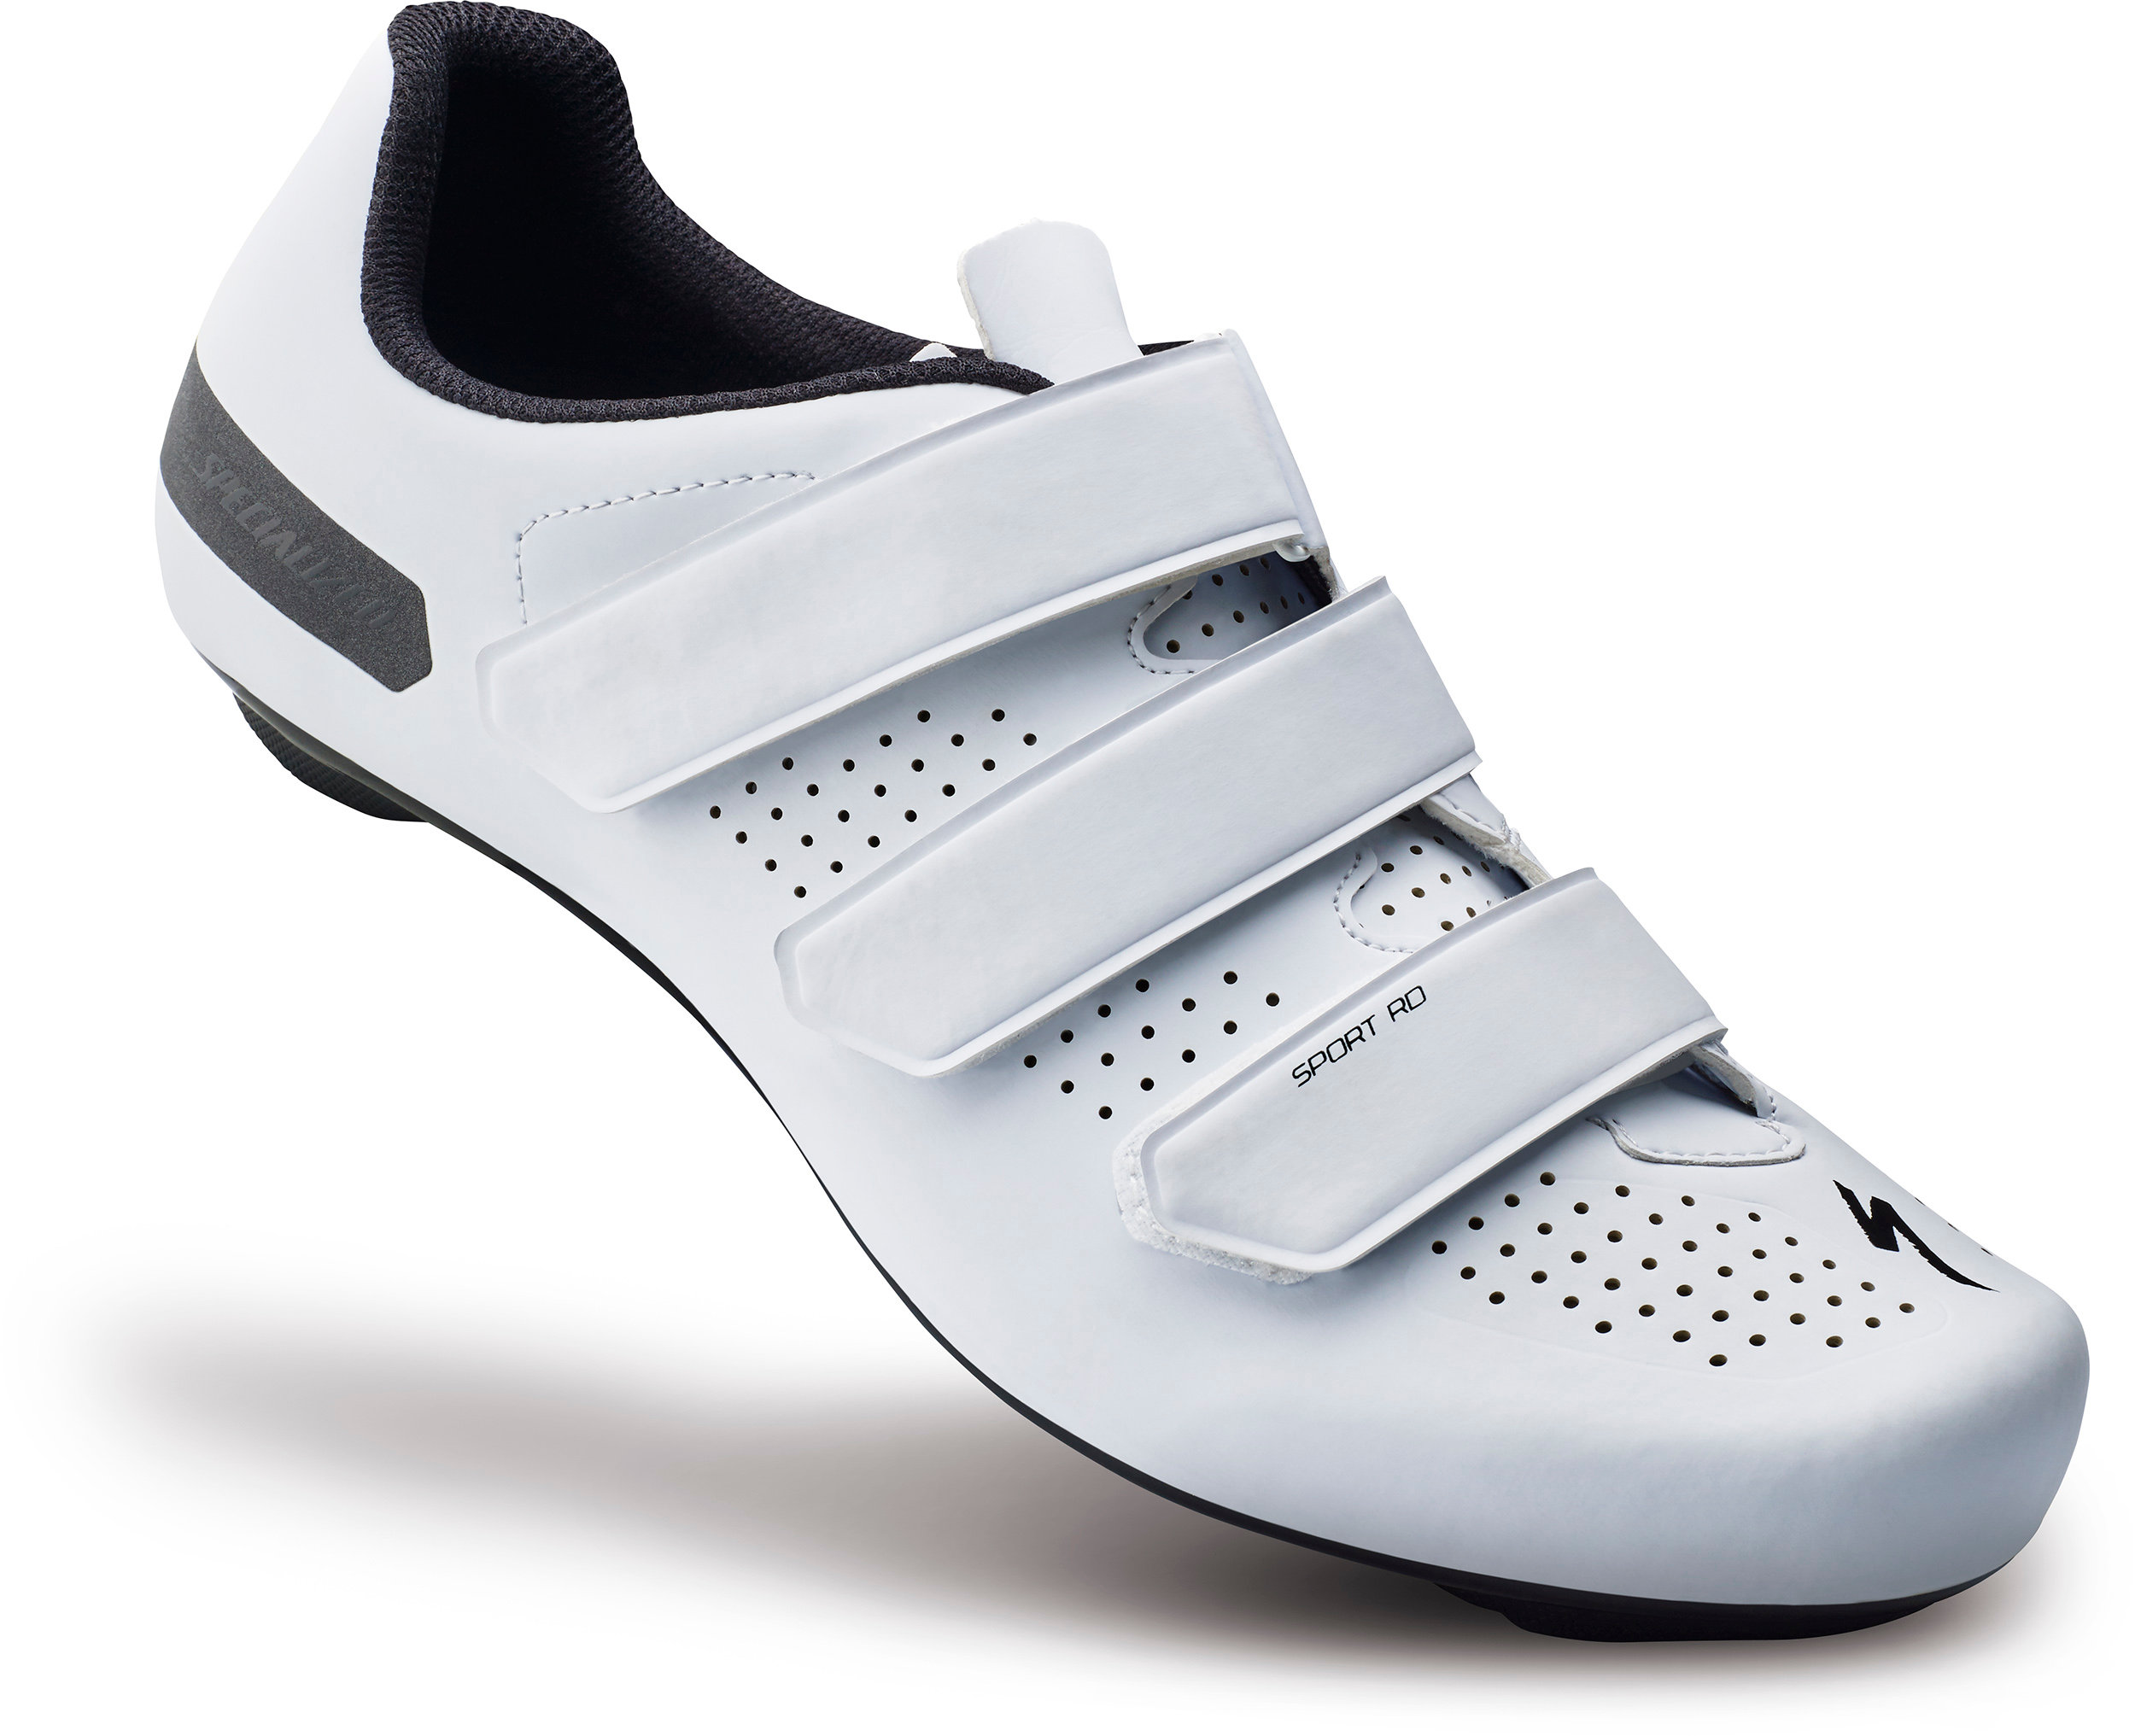 SPECIALIZED SPORT RD SHOE WHT 42/9 - Alpha Bikes